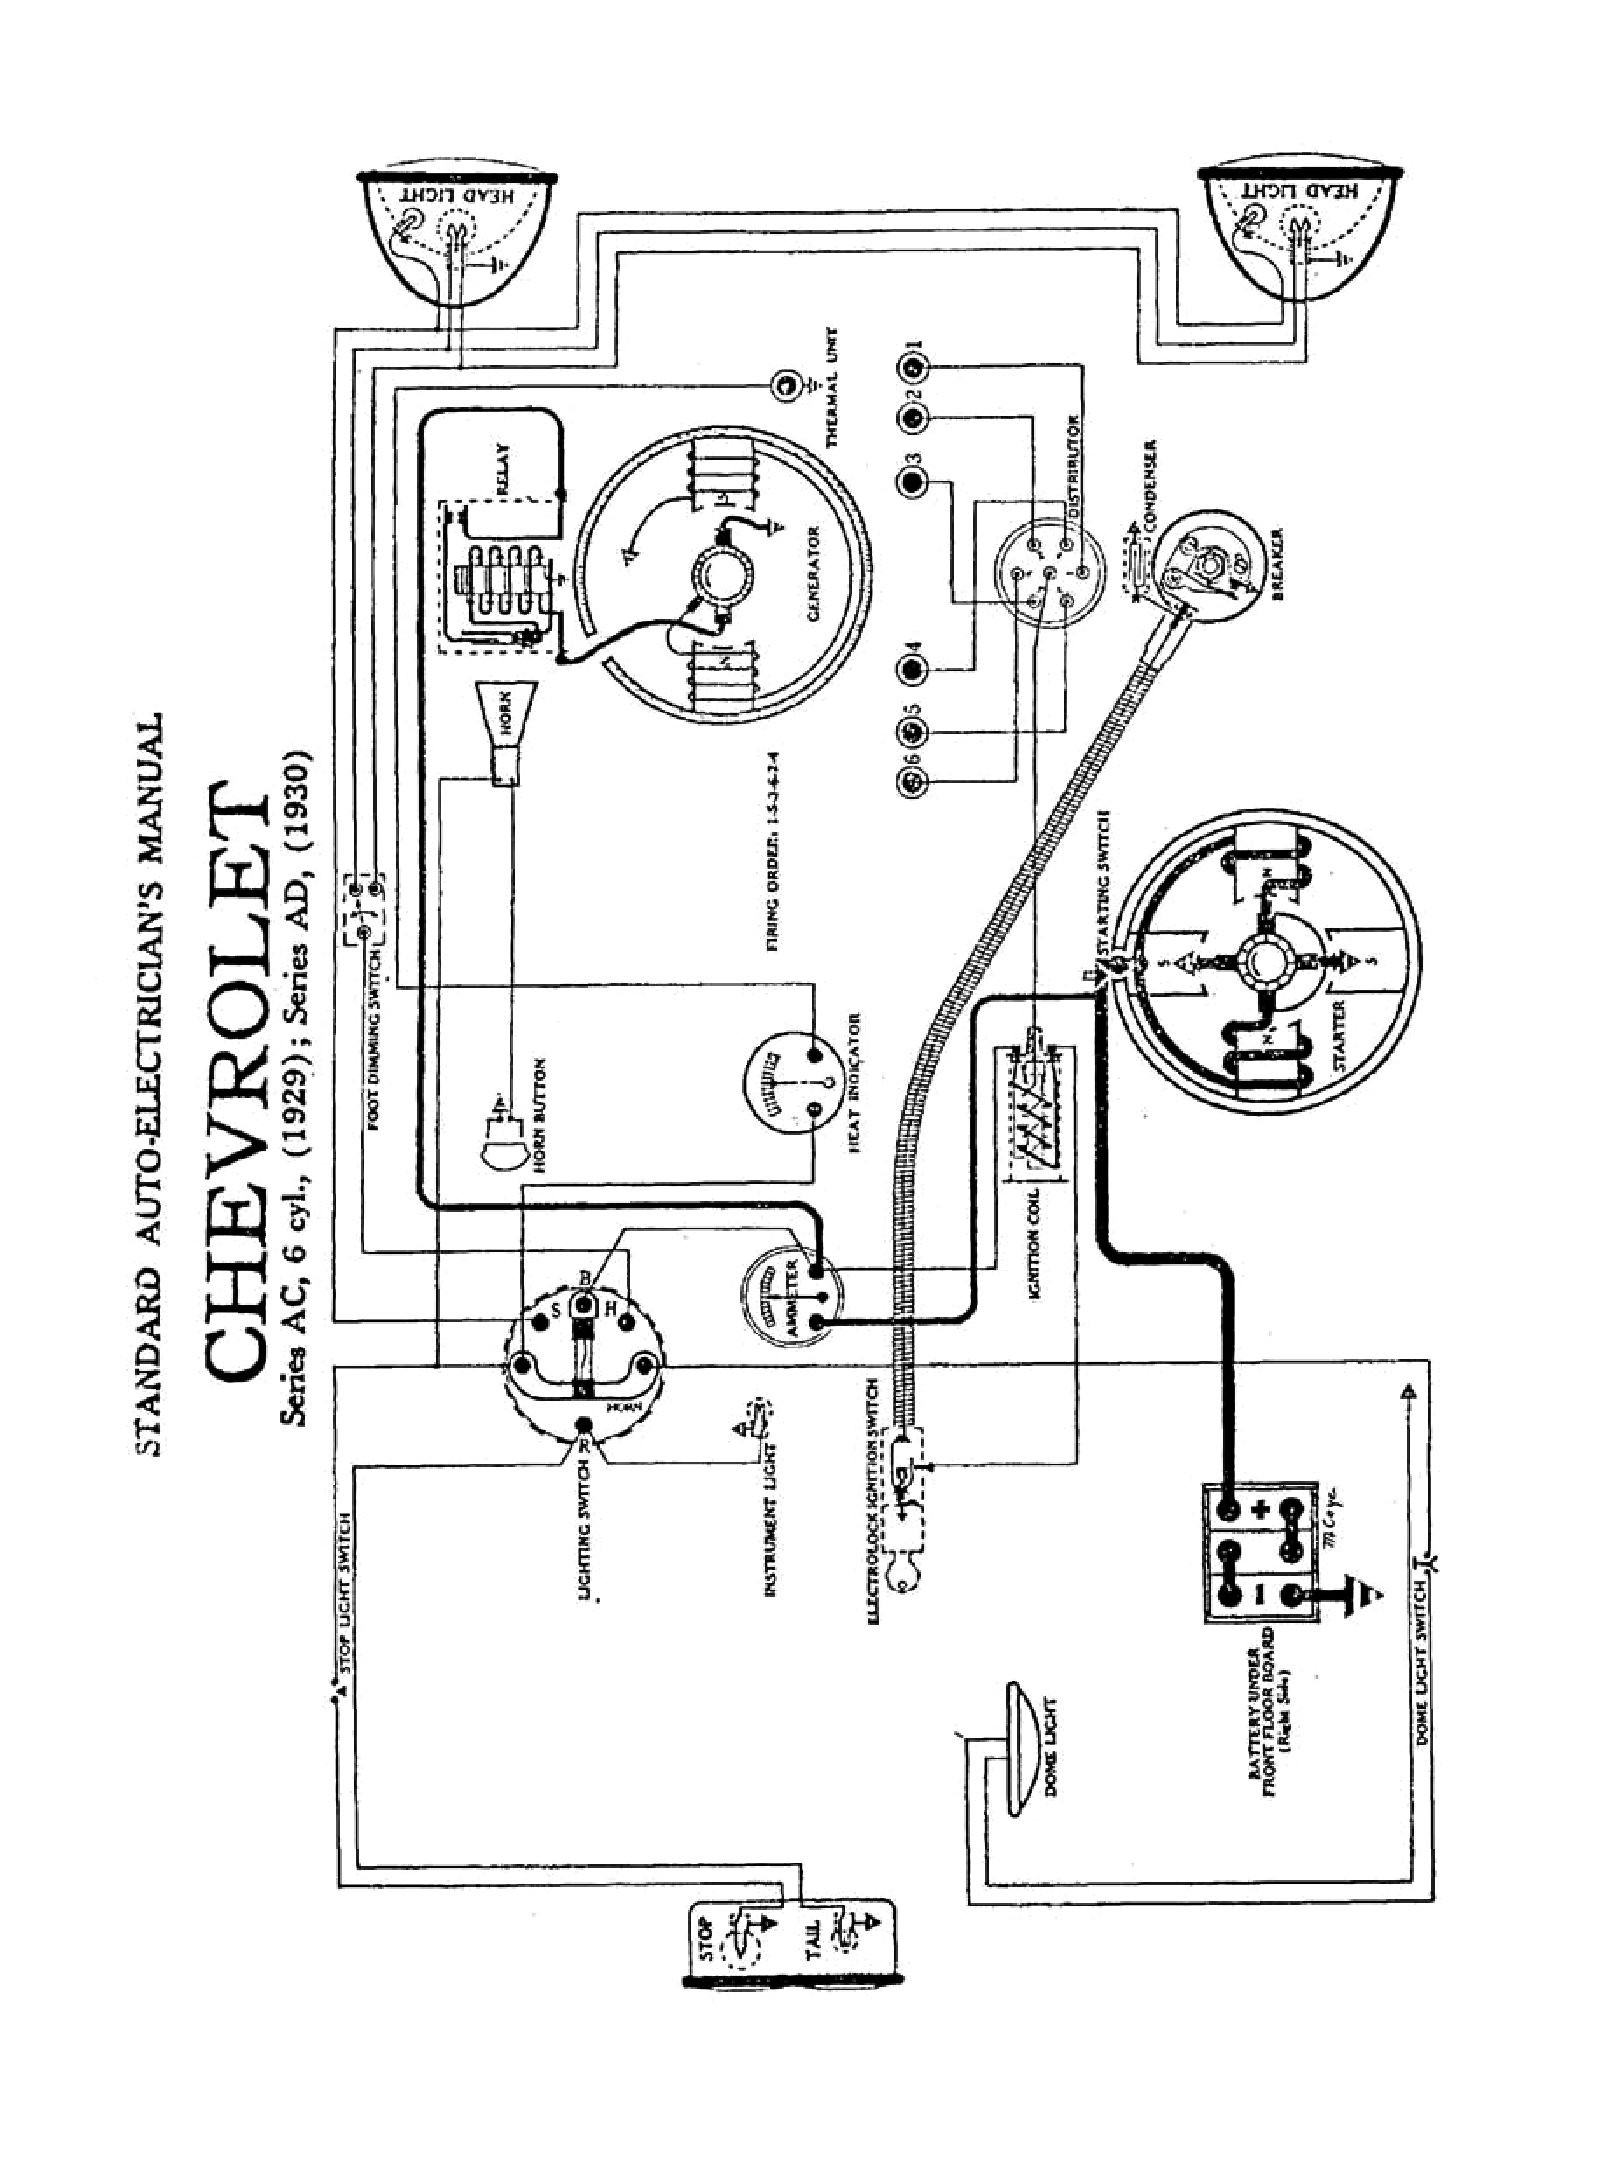 hight resolution of model t ford wiring diagrams free image wiring diagram engine wire rh ingredican co ford model